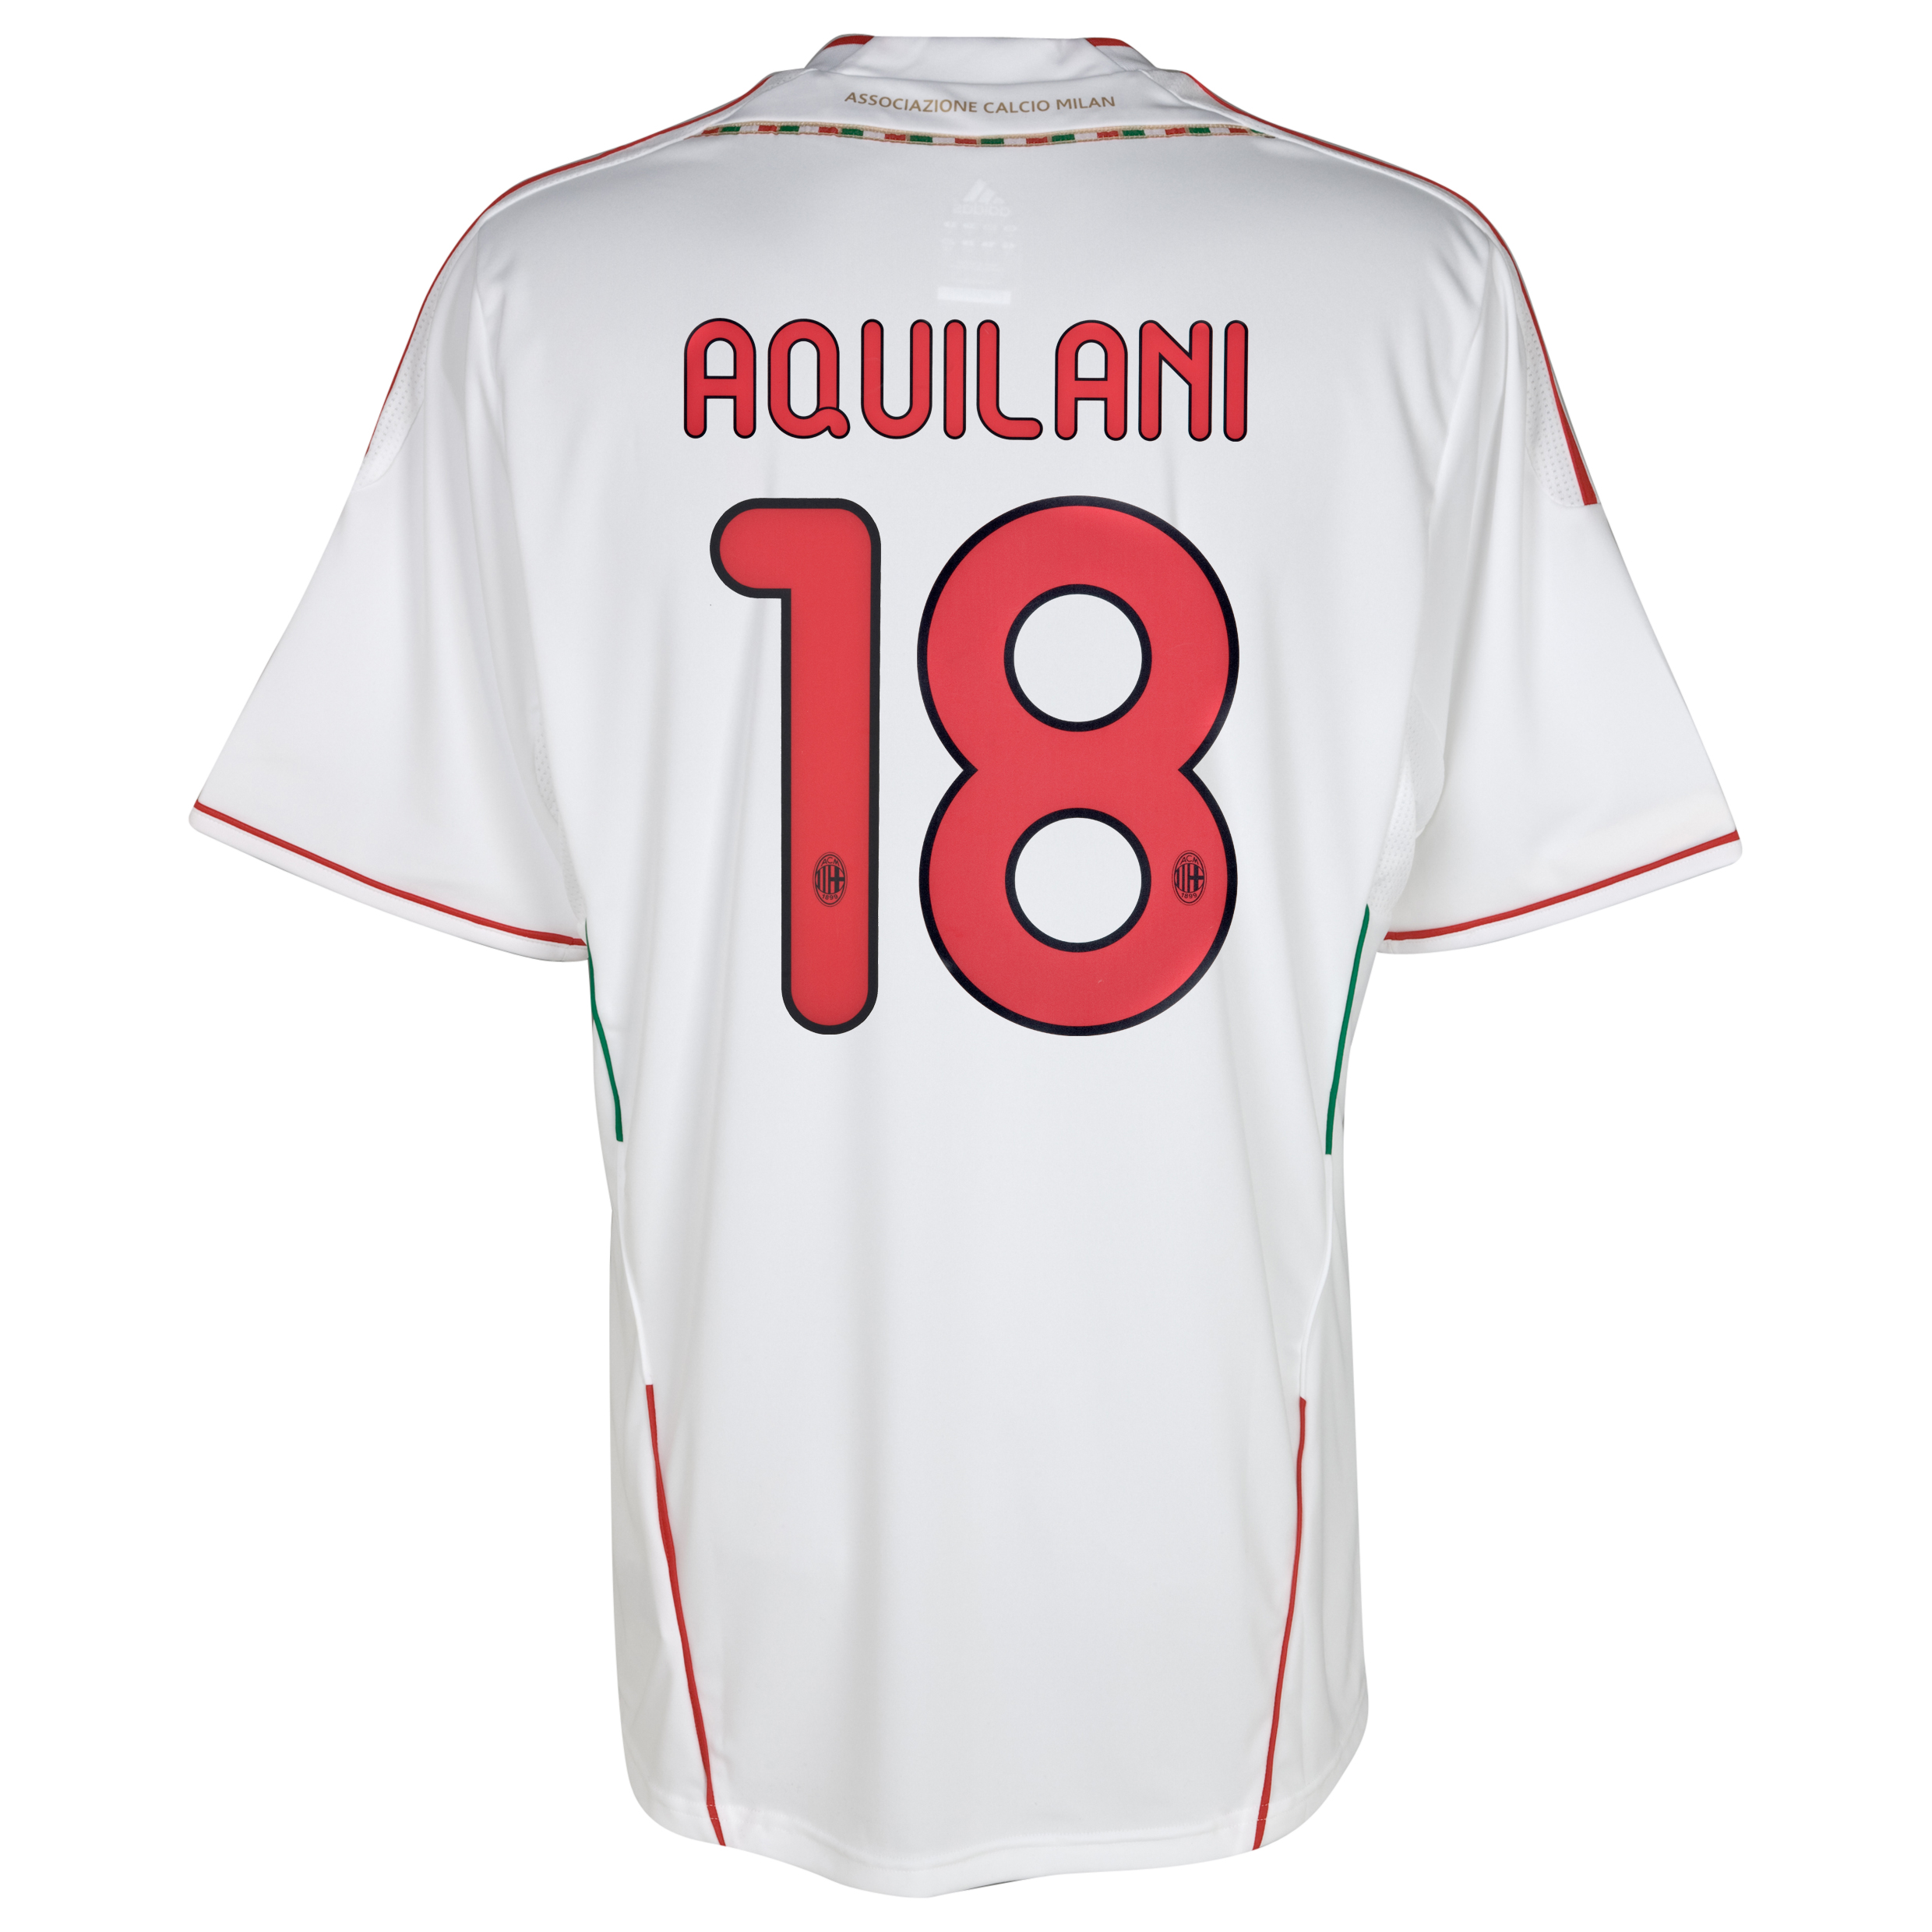 AC Milan Away Shirt 2011/12 with Aquilani 18 printing